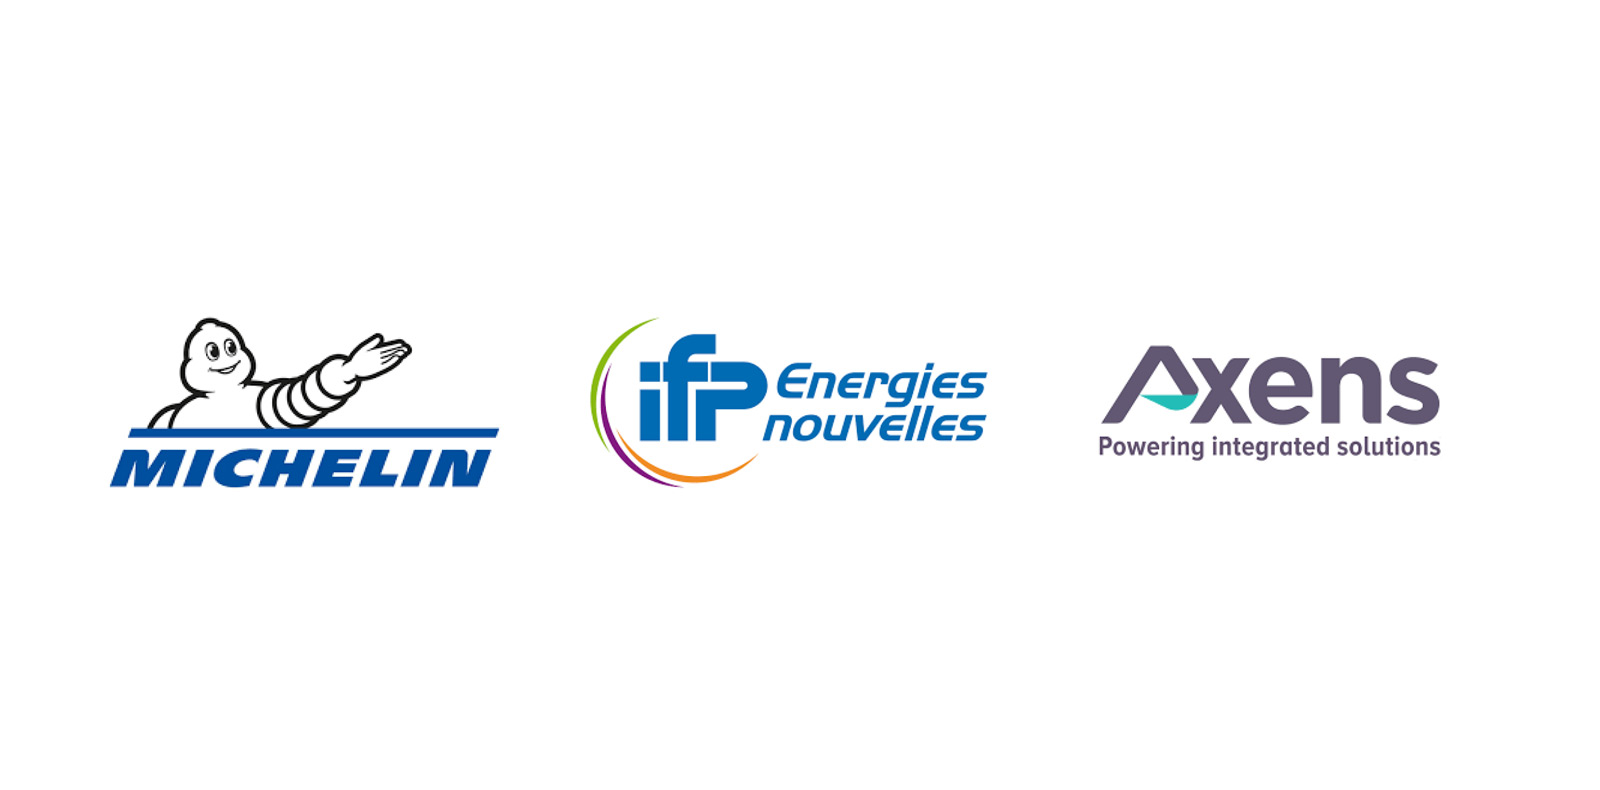 Michelin, IFP Energies nouvelles, and Axens give a new dimension to the BioButterfly project